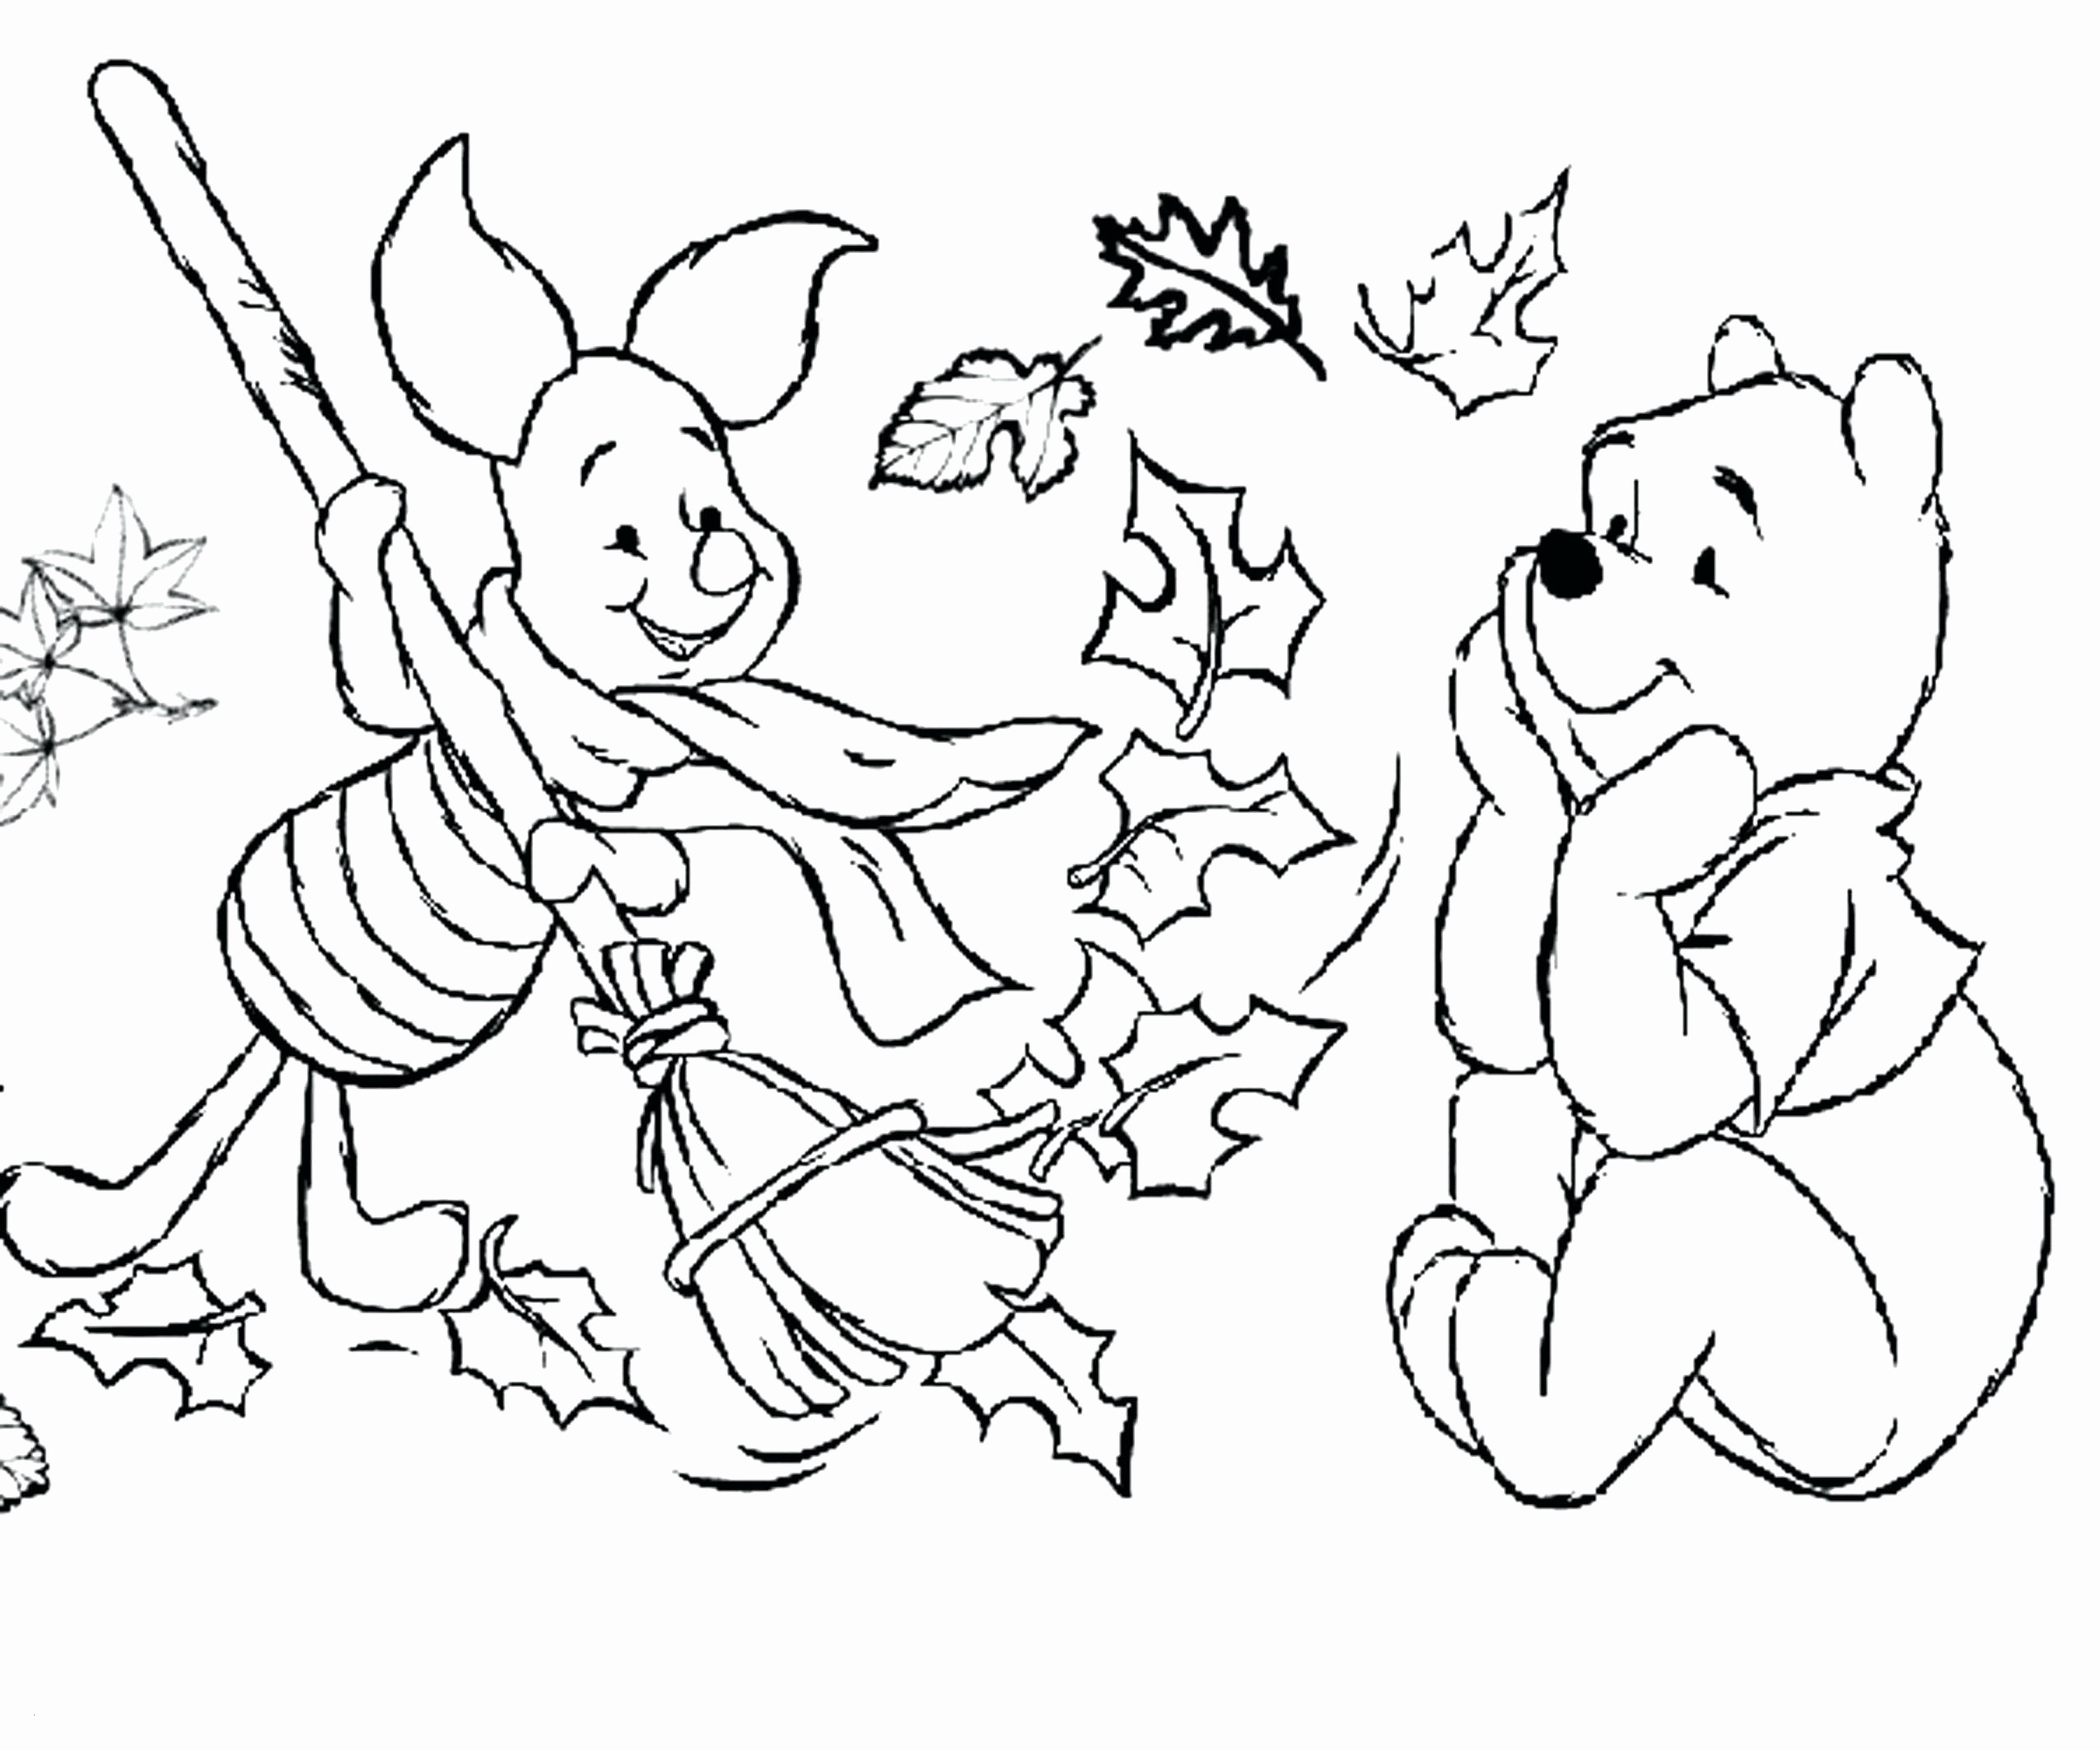 Circus Coloring Pages  Printable 10q - To print for your project